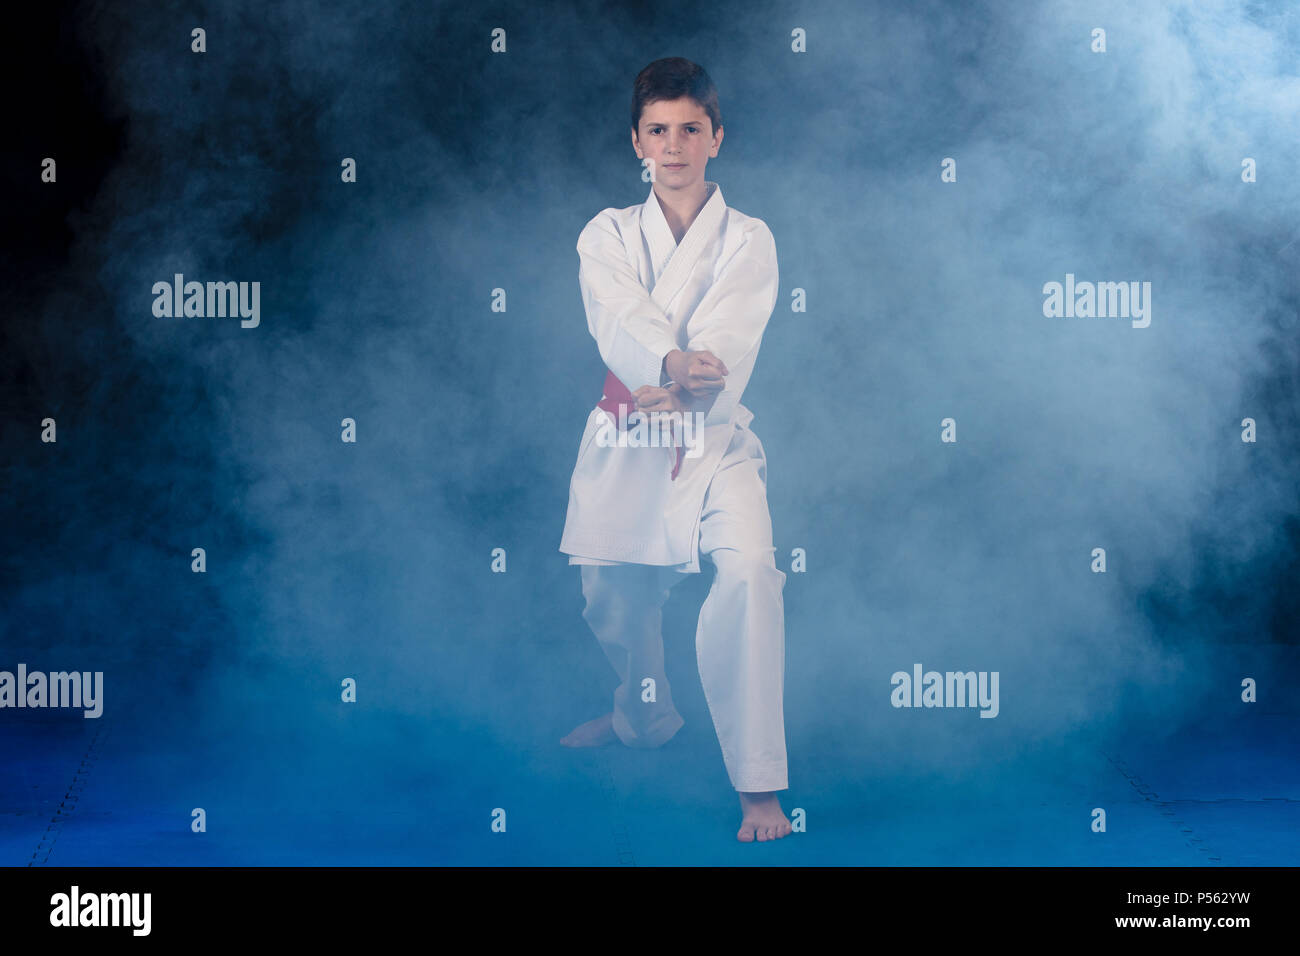 Pre-teen boy doing karate on a black background with smoke - Stock Image